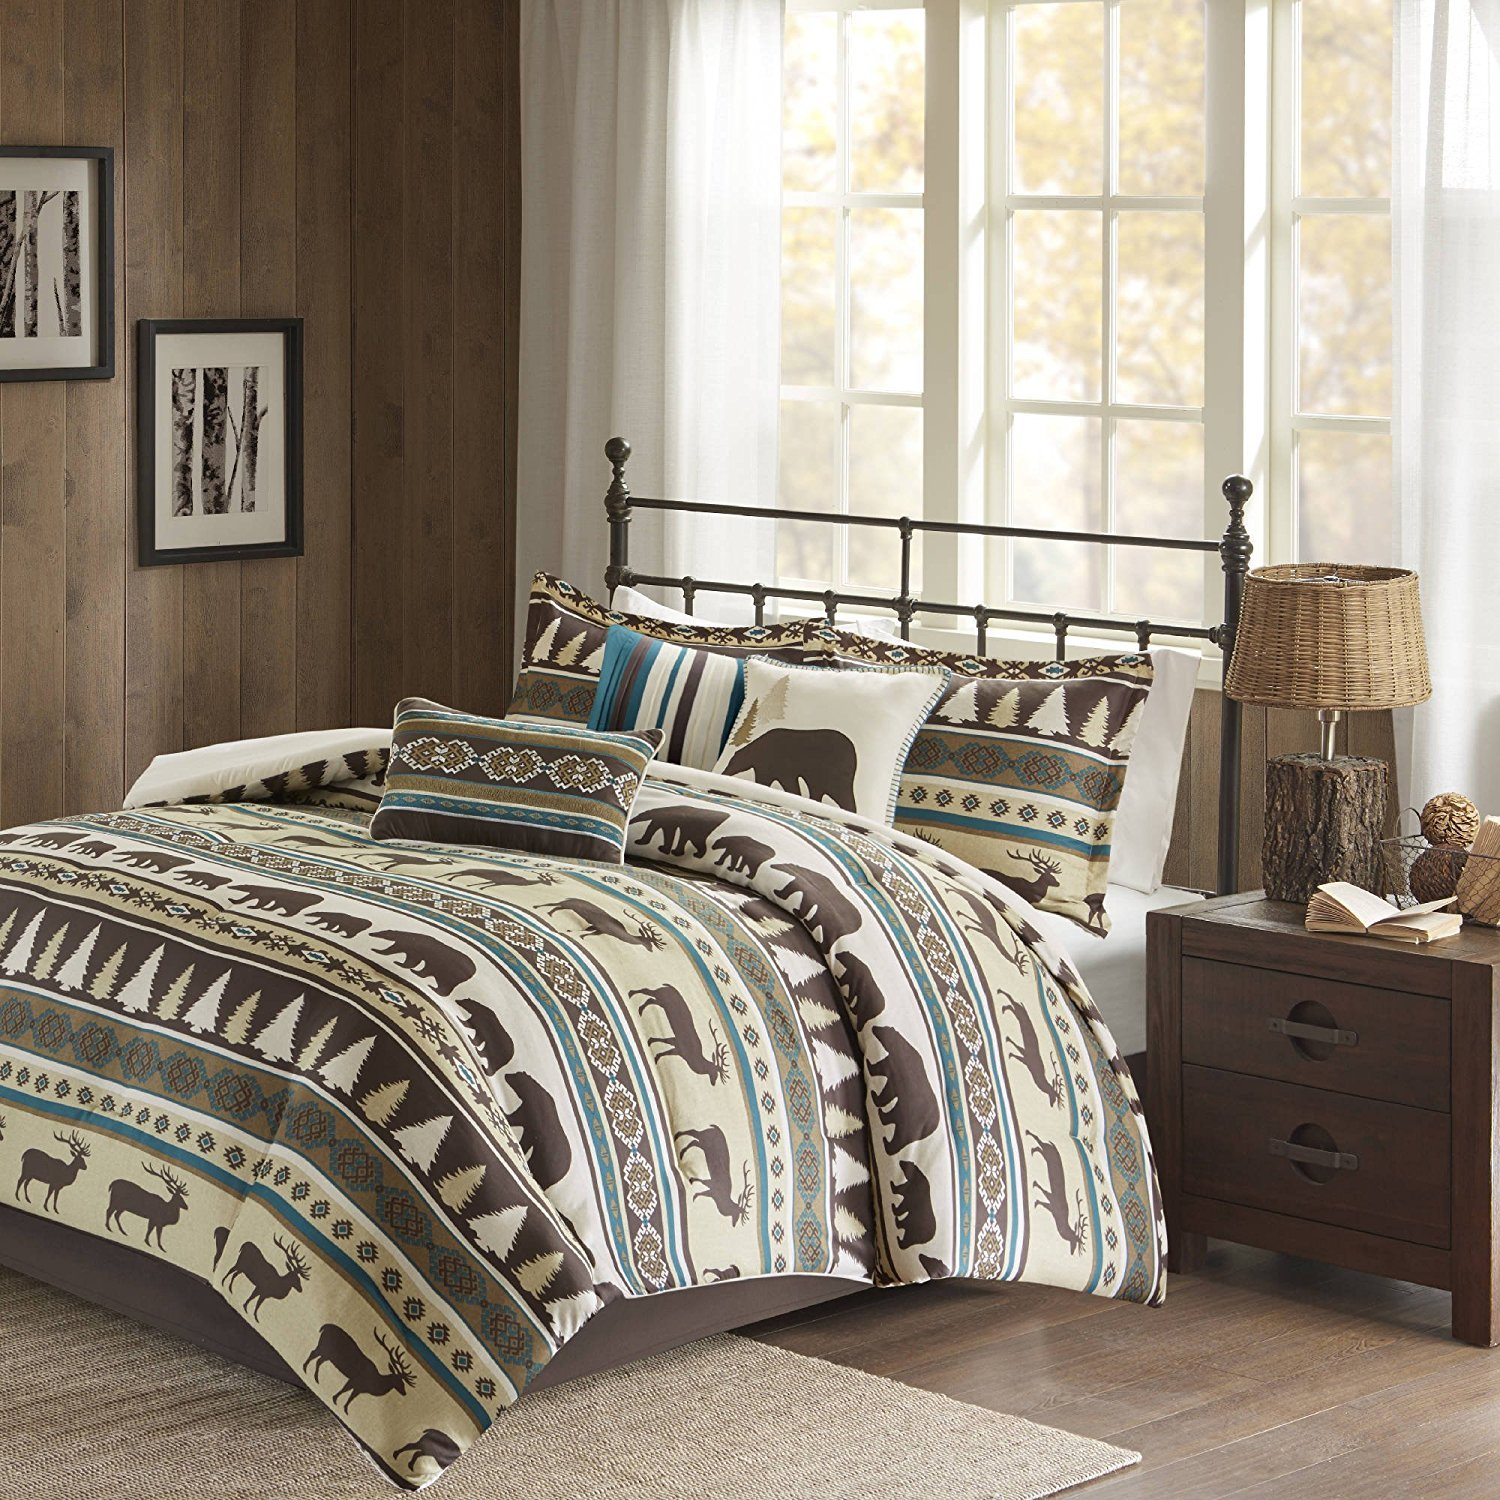 MS 7pc Teal Blue White Brown Deer Pattern Comforter King Set, Hunting Bedding Bear Themed Cabin Lodge Elk Southwest Warm Cozy Overfilled Animal Montana Pine Trees Butte, Polyester